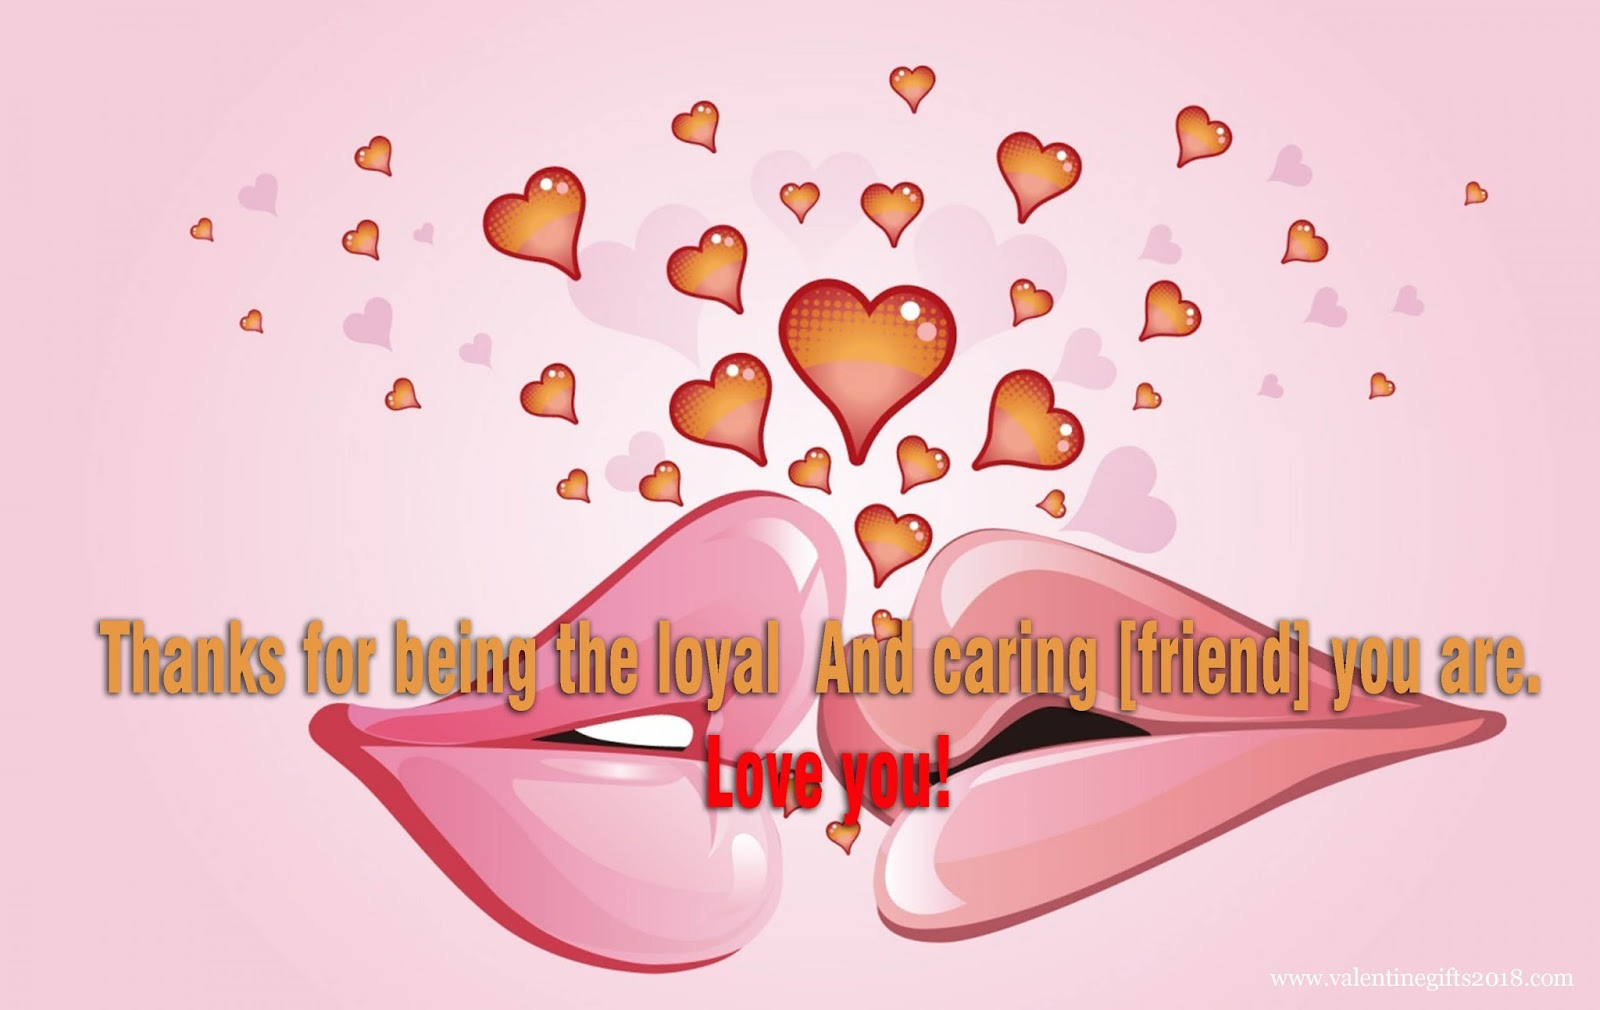 Valentine greetings for friends valentine gifts 2018 cool thanks for being the loyal and caring friend you are love you kristyandbryce Gallery